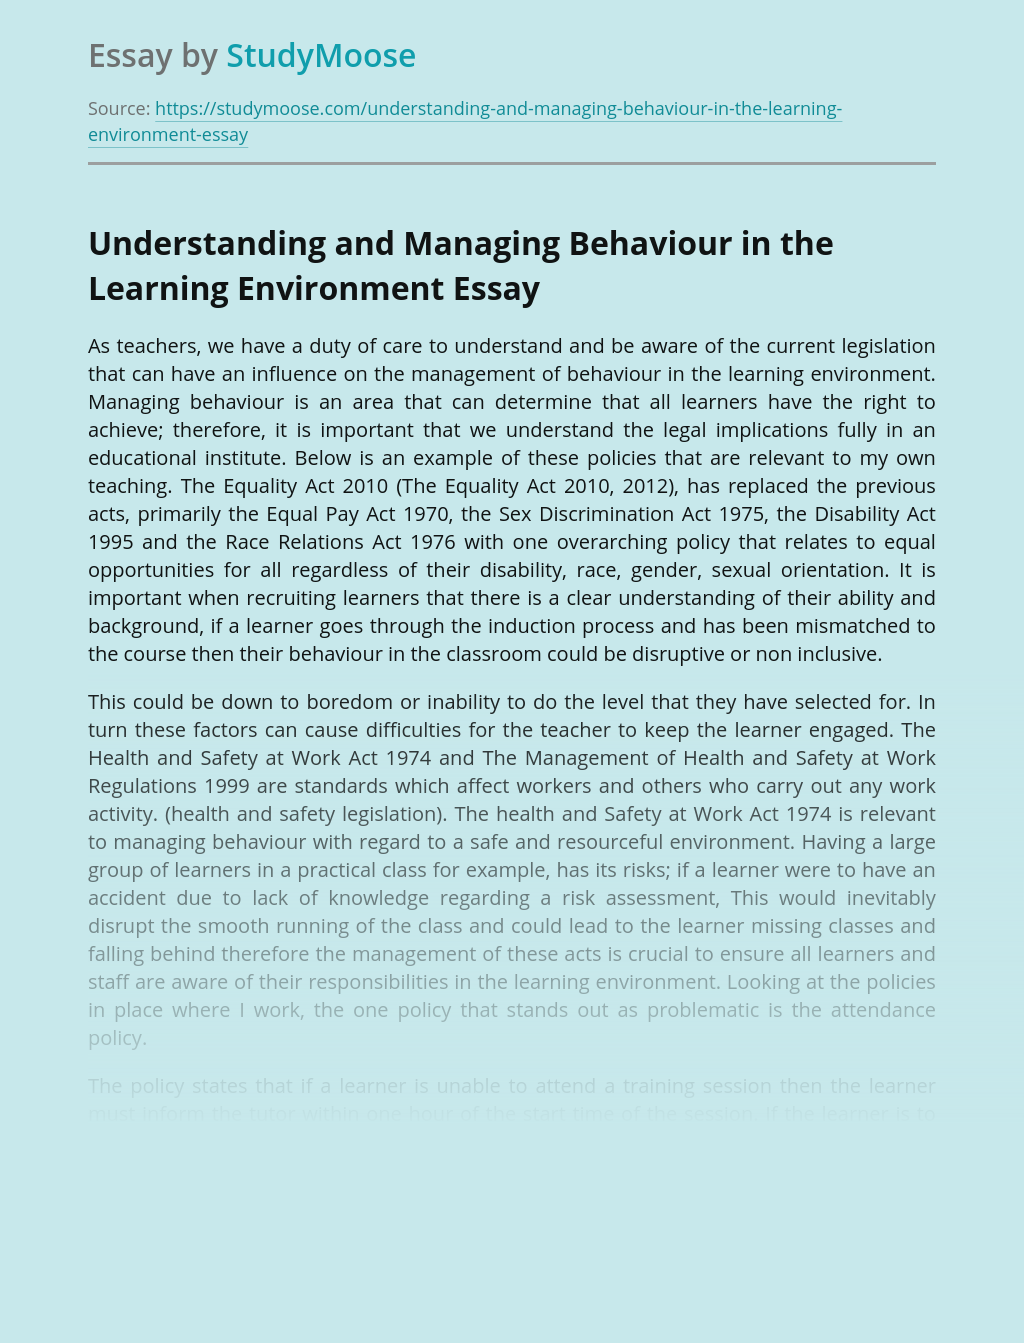 Understanding and Managing Behaviour in the Learning Environment